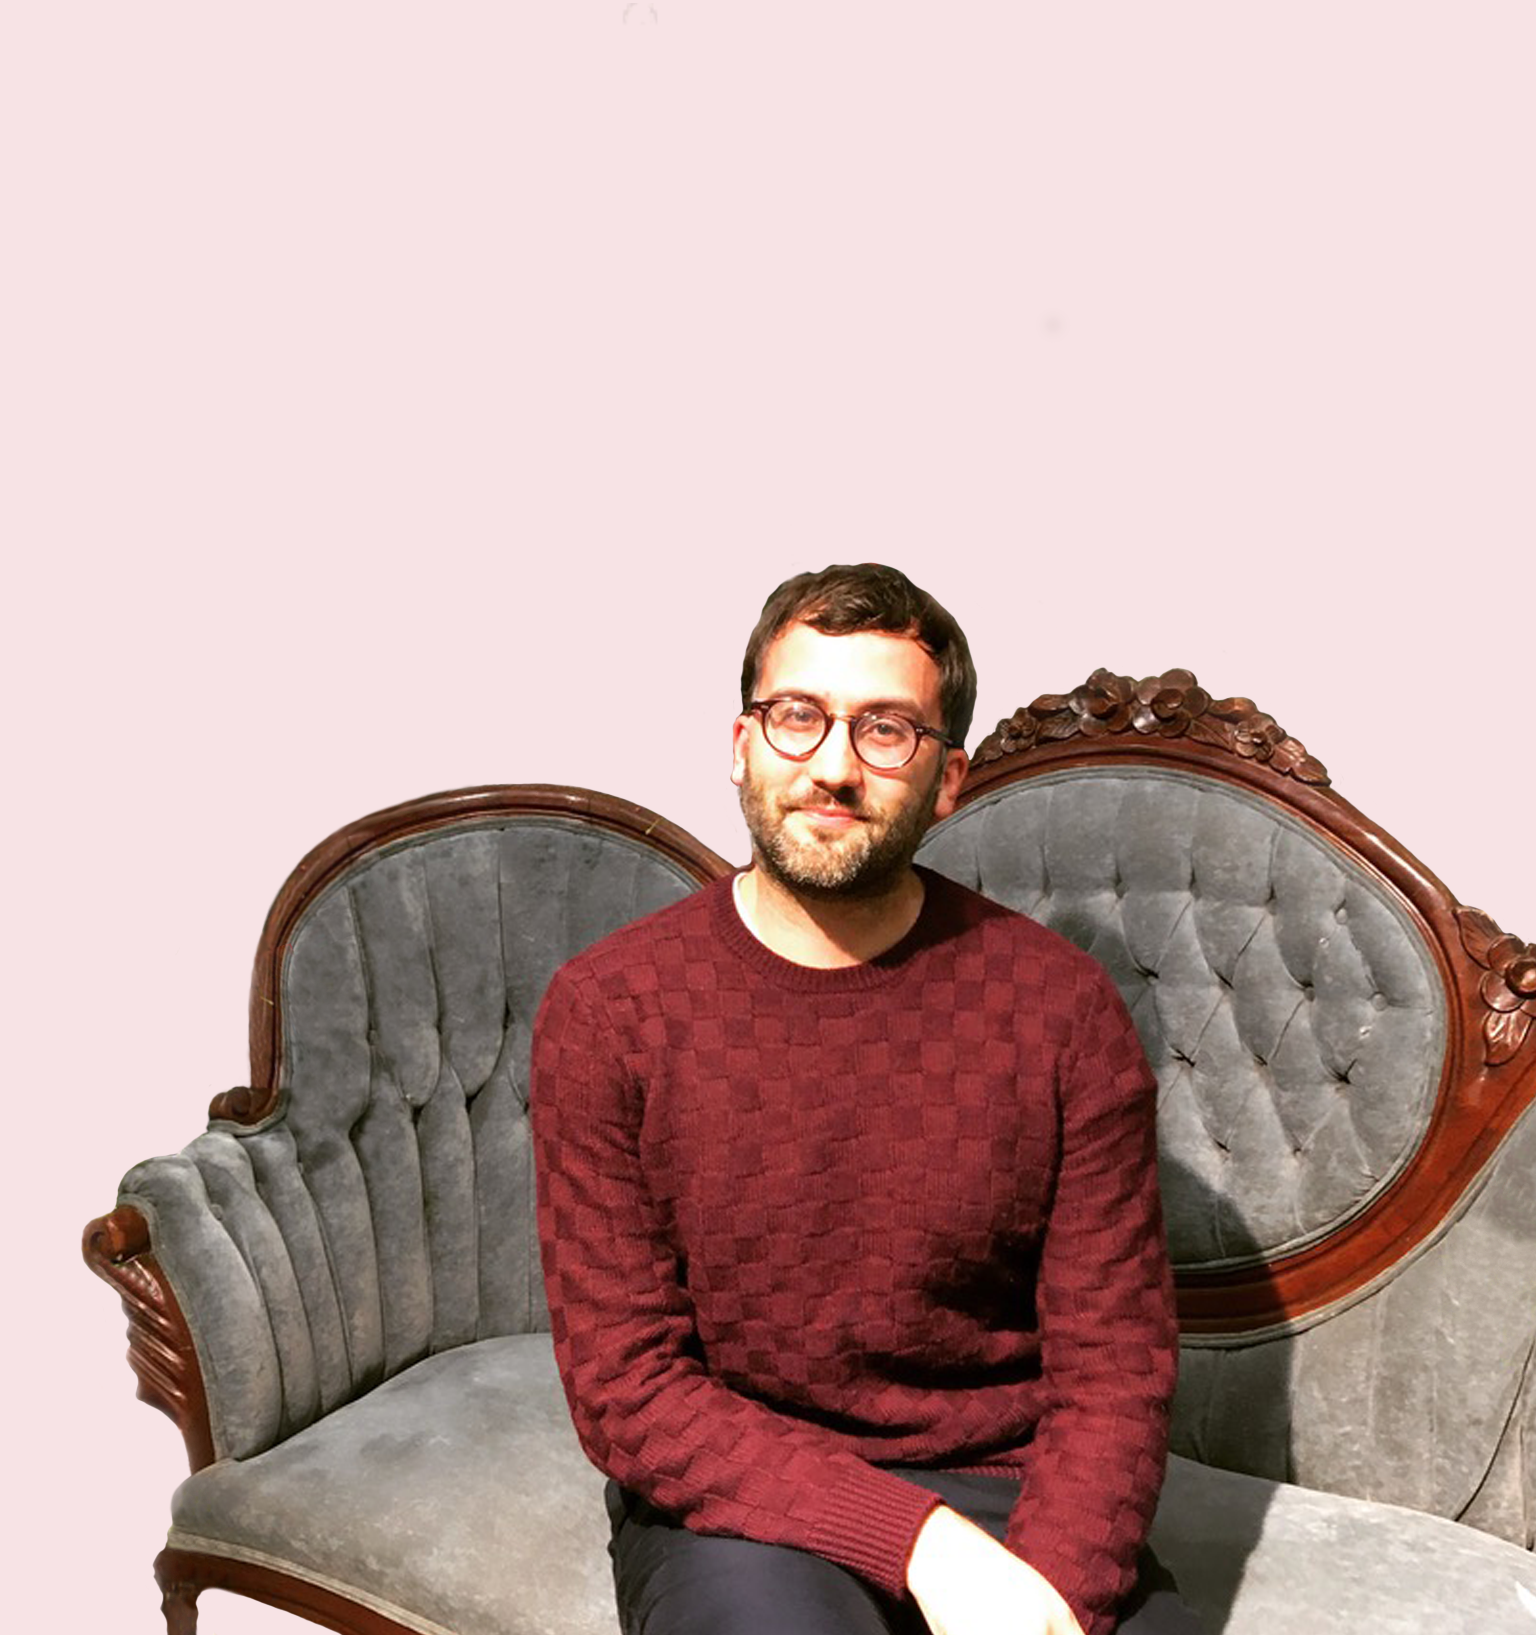 Matthew BiehlCOPY EDITOR - Hometown: Vancouver, BCInstagram: @matthewbiehl24Astrological sign: CapricornSunday uniform: A cozy Breton striped sweater and a broken in pair of jeans or chinosDream Vacation: Spending a month exploring JapanFavourite Book: A tie between Bridget Jones's Diary and Call Me By Your Name